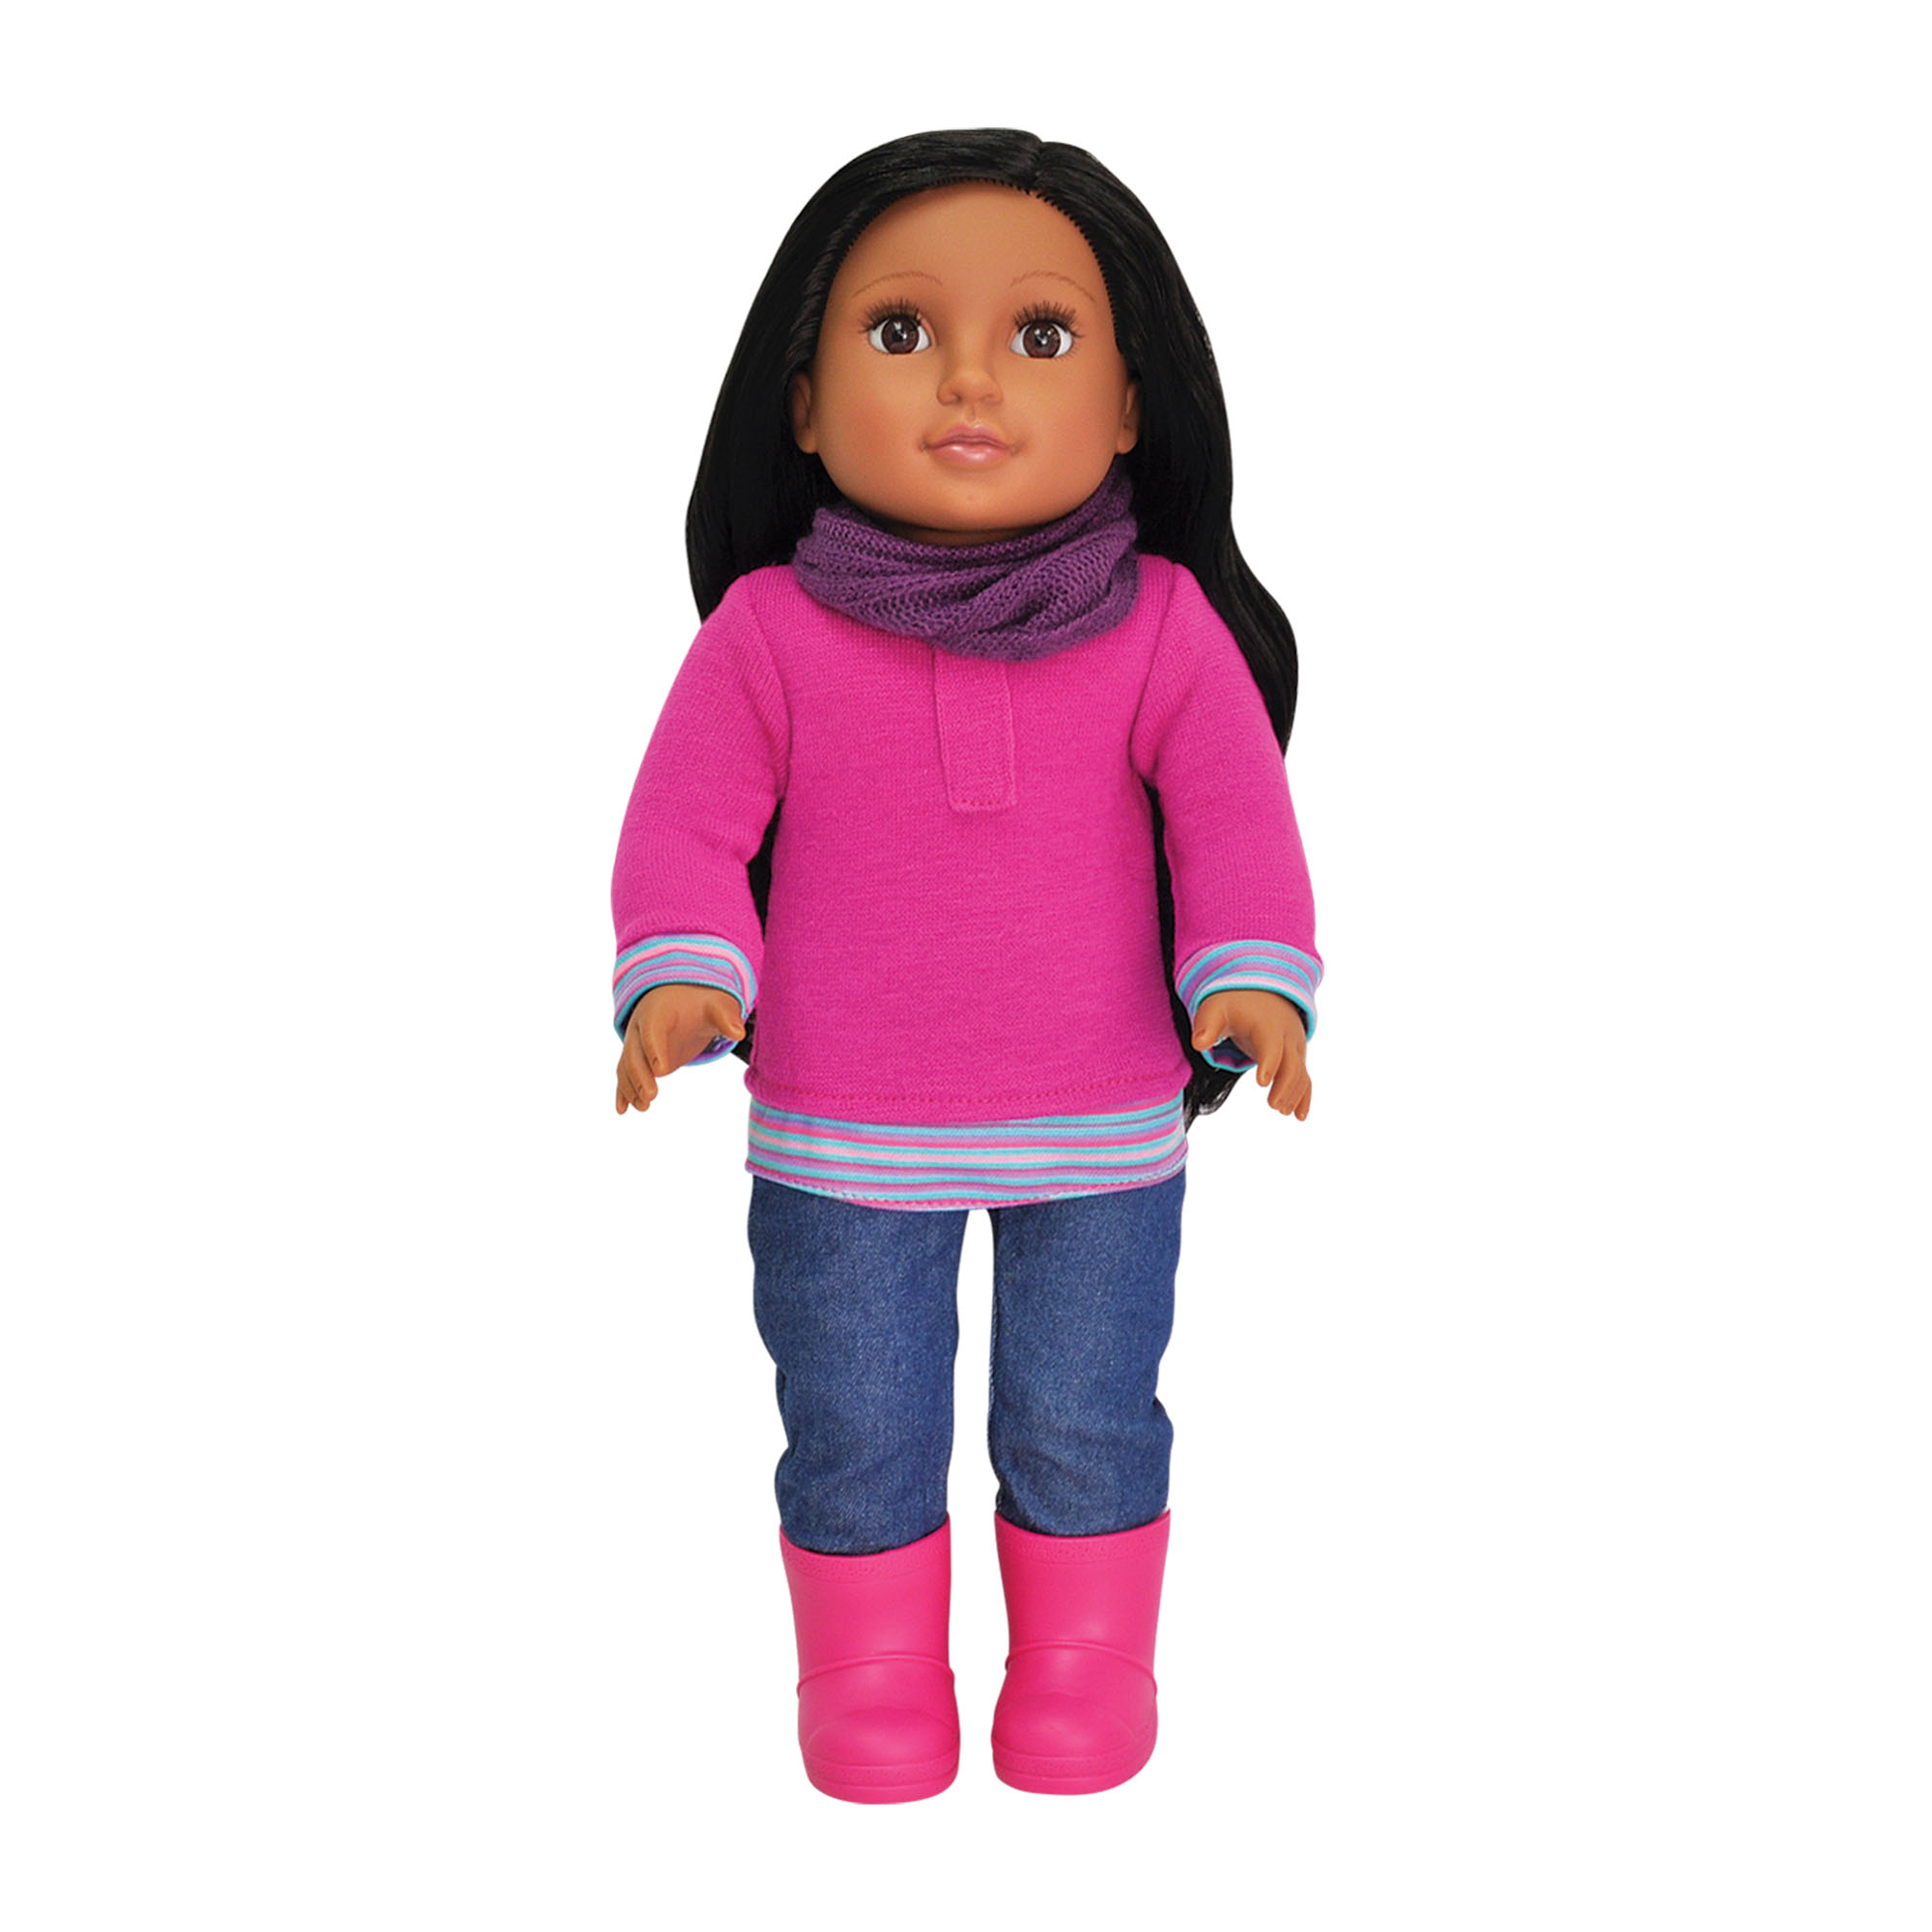 "Newberry Dolls 18"" Amara Doll - Kmart"